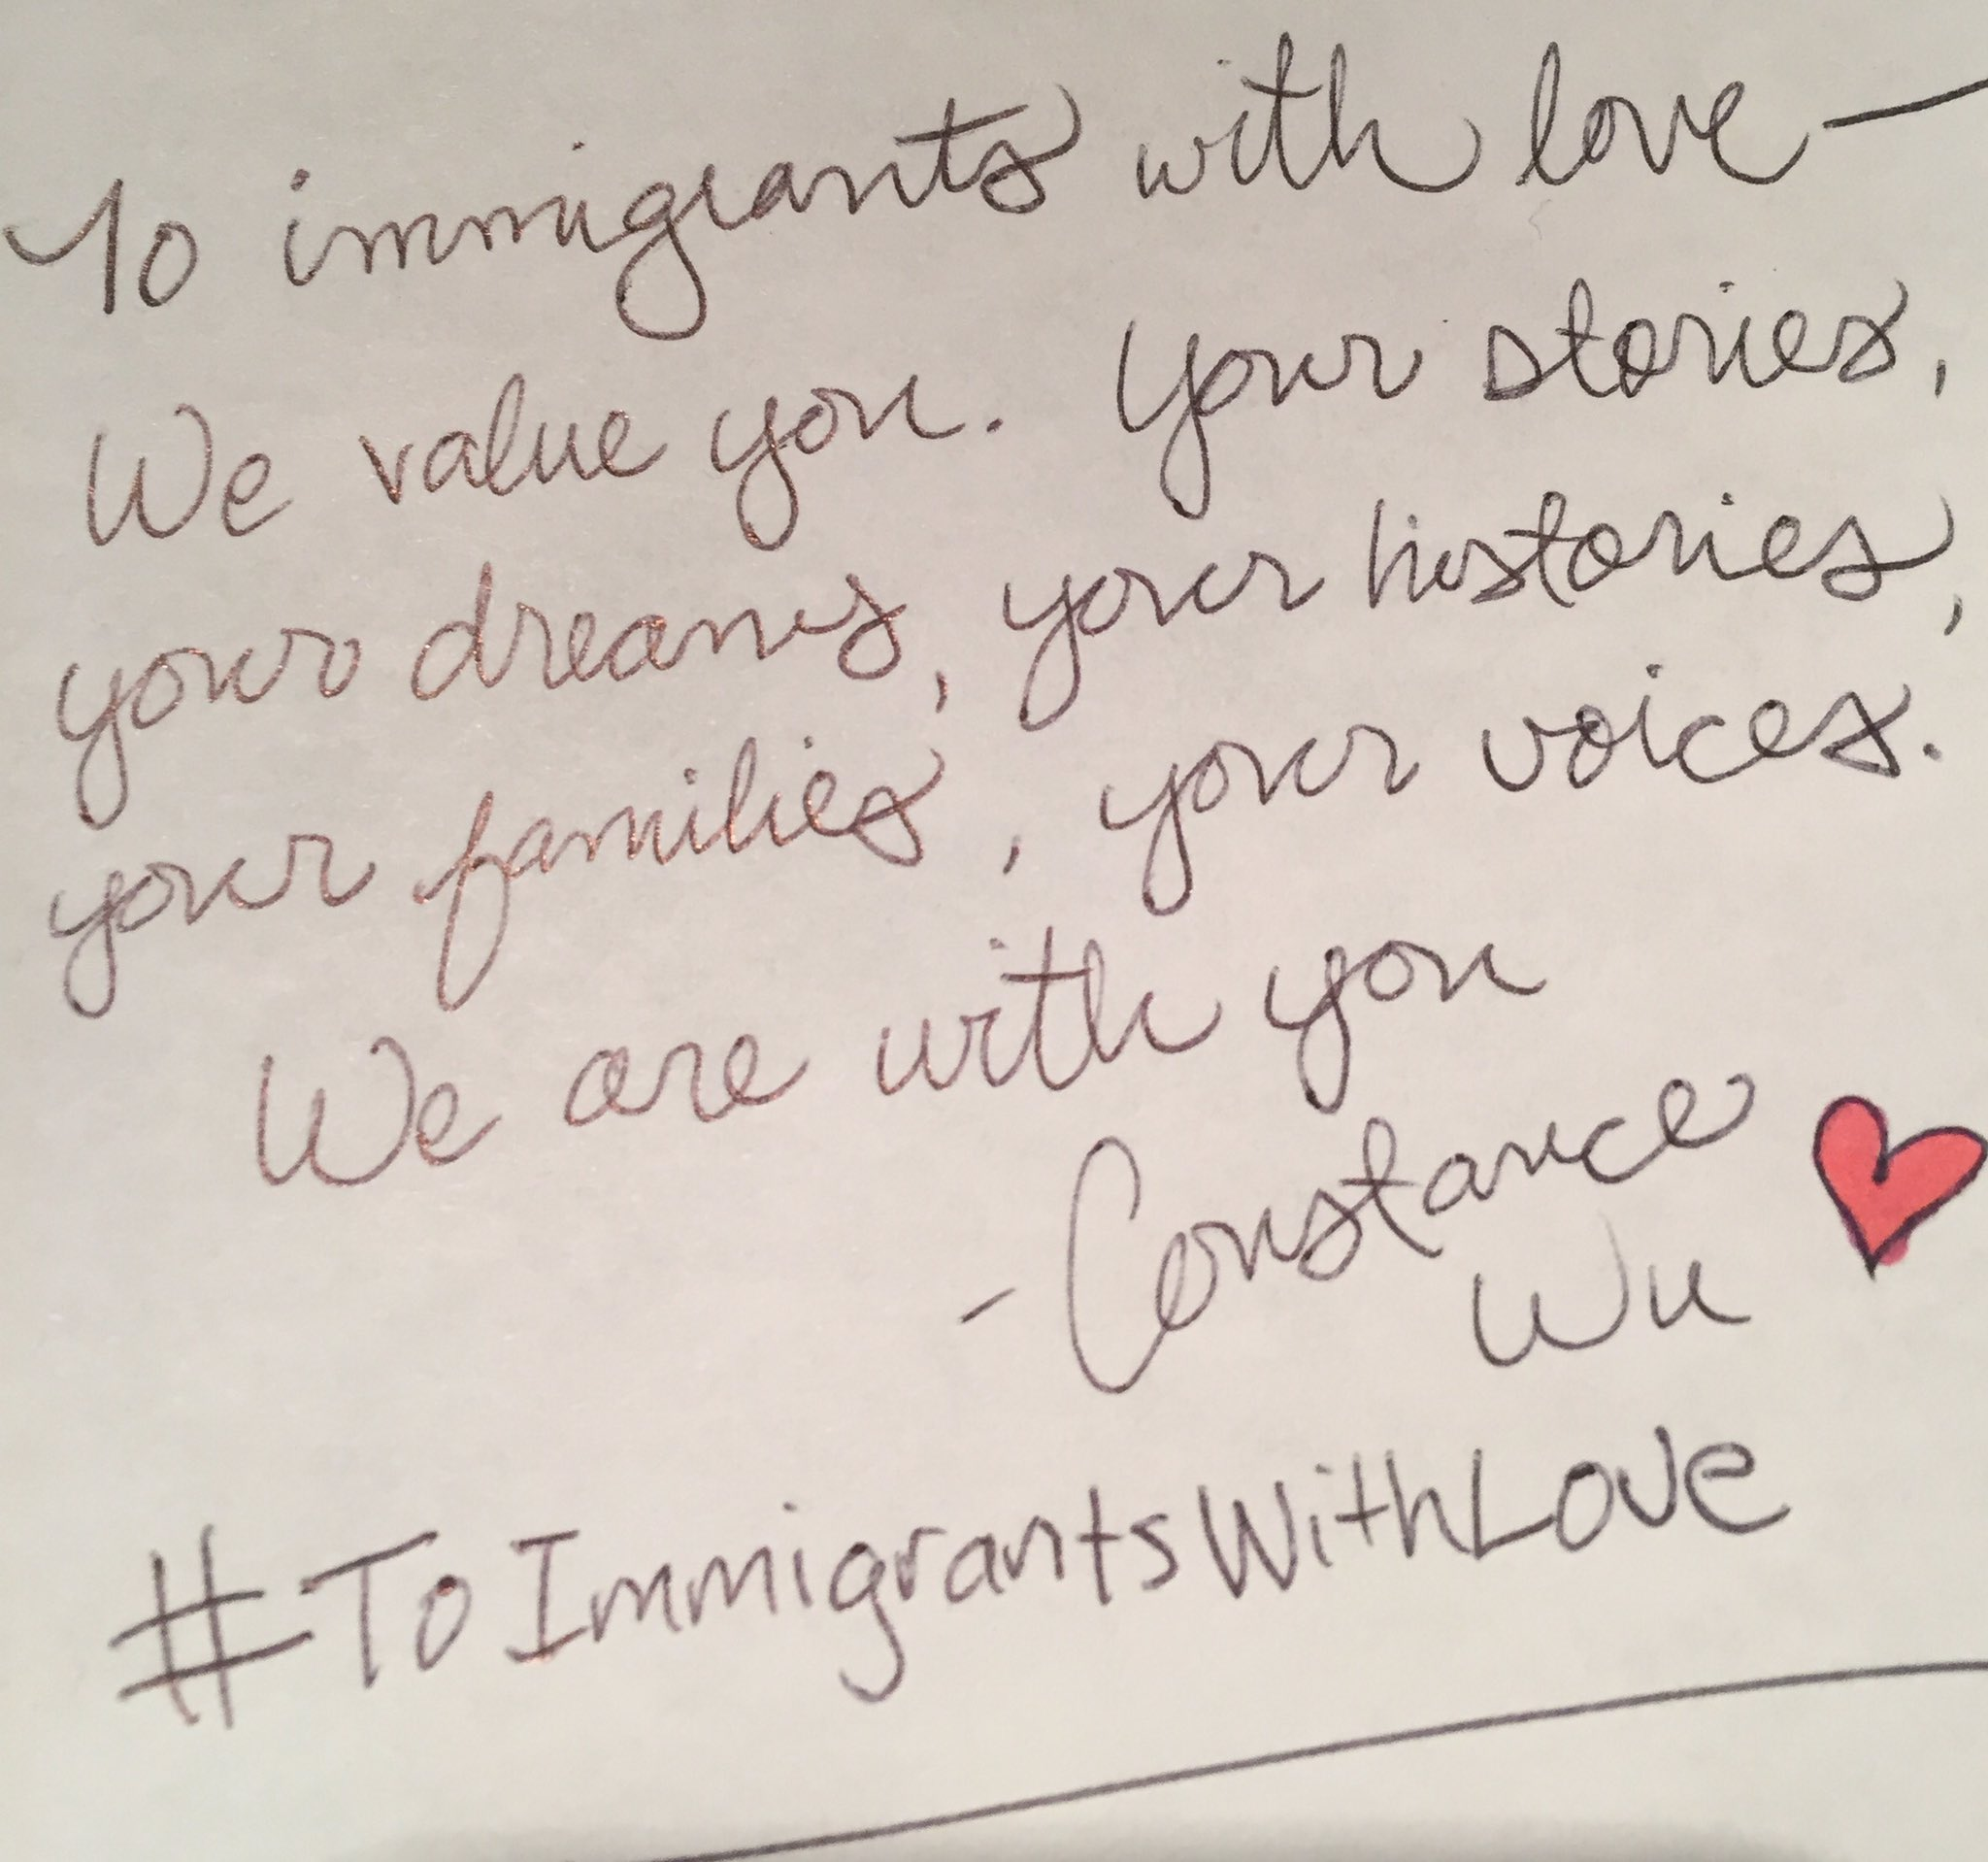 Write a letter #ToImmigrantsWithLove ❤️ https://t.co/ZE35dHNdFI